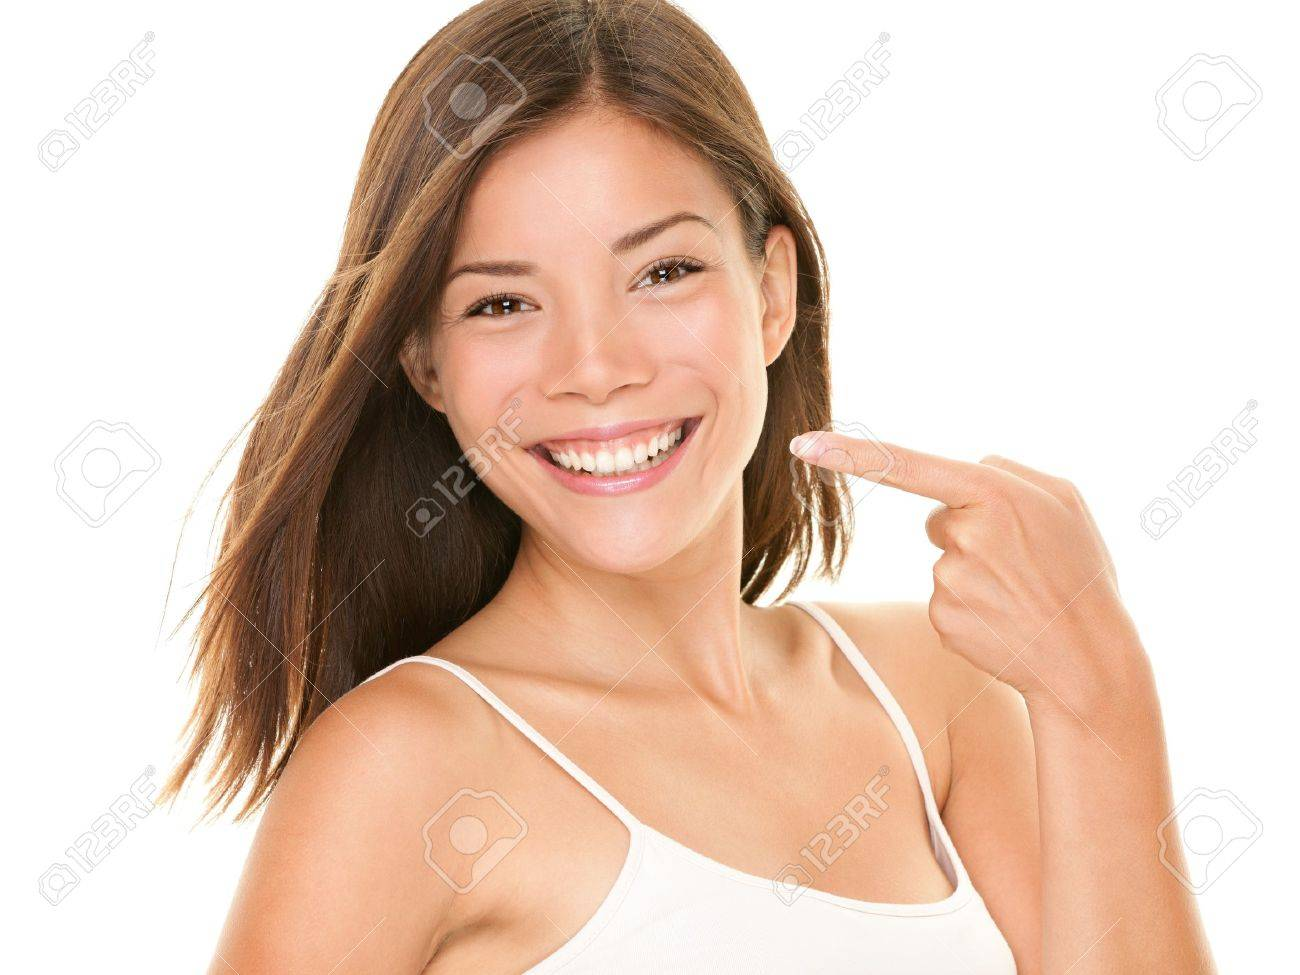 Dental teeth - perfect smile woman pointing at toothy smile looking happy at camera. Standard-Bild - 12344076